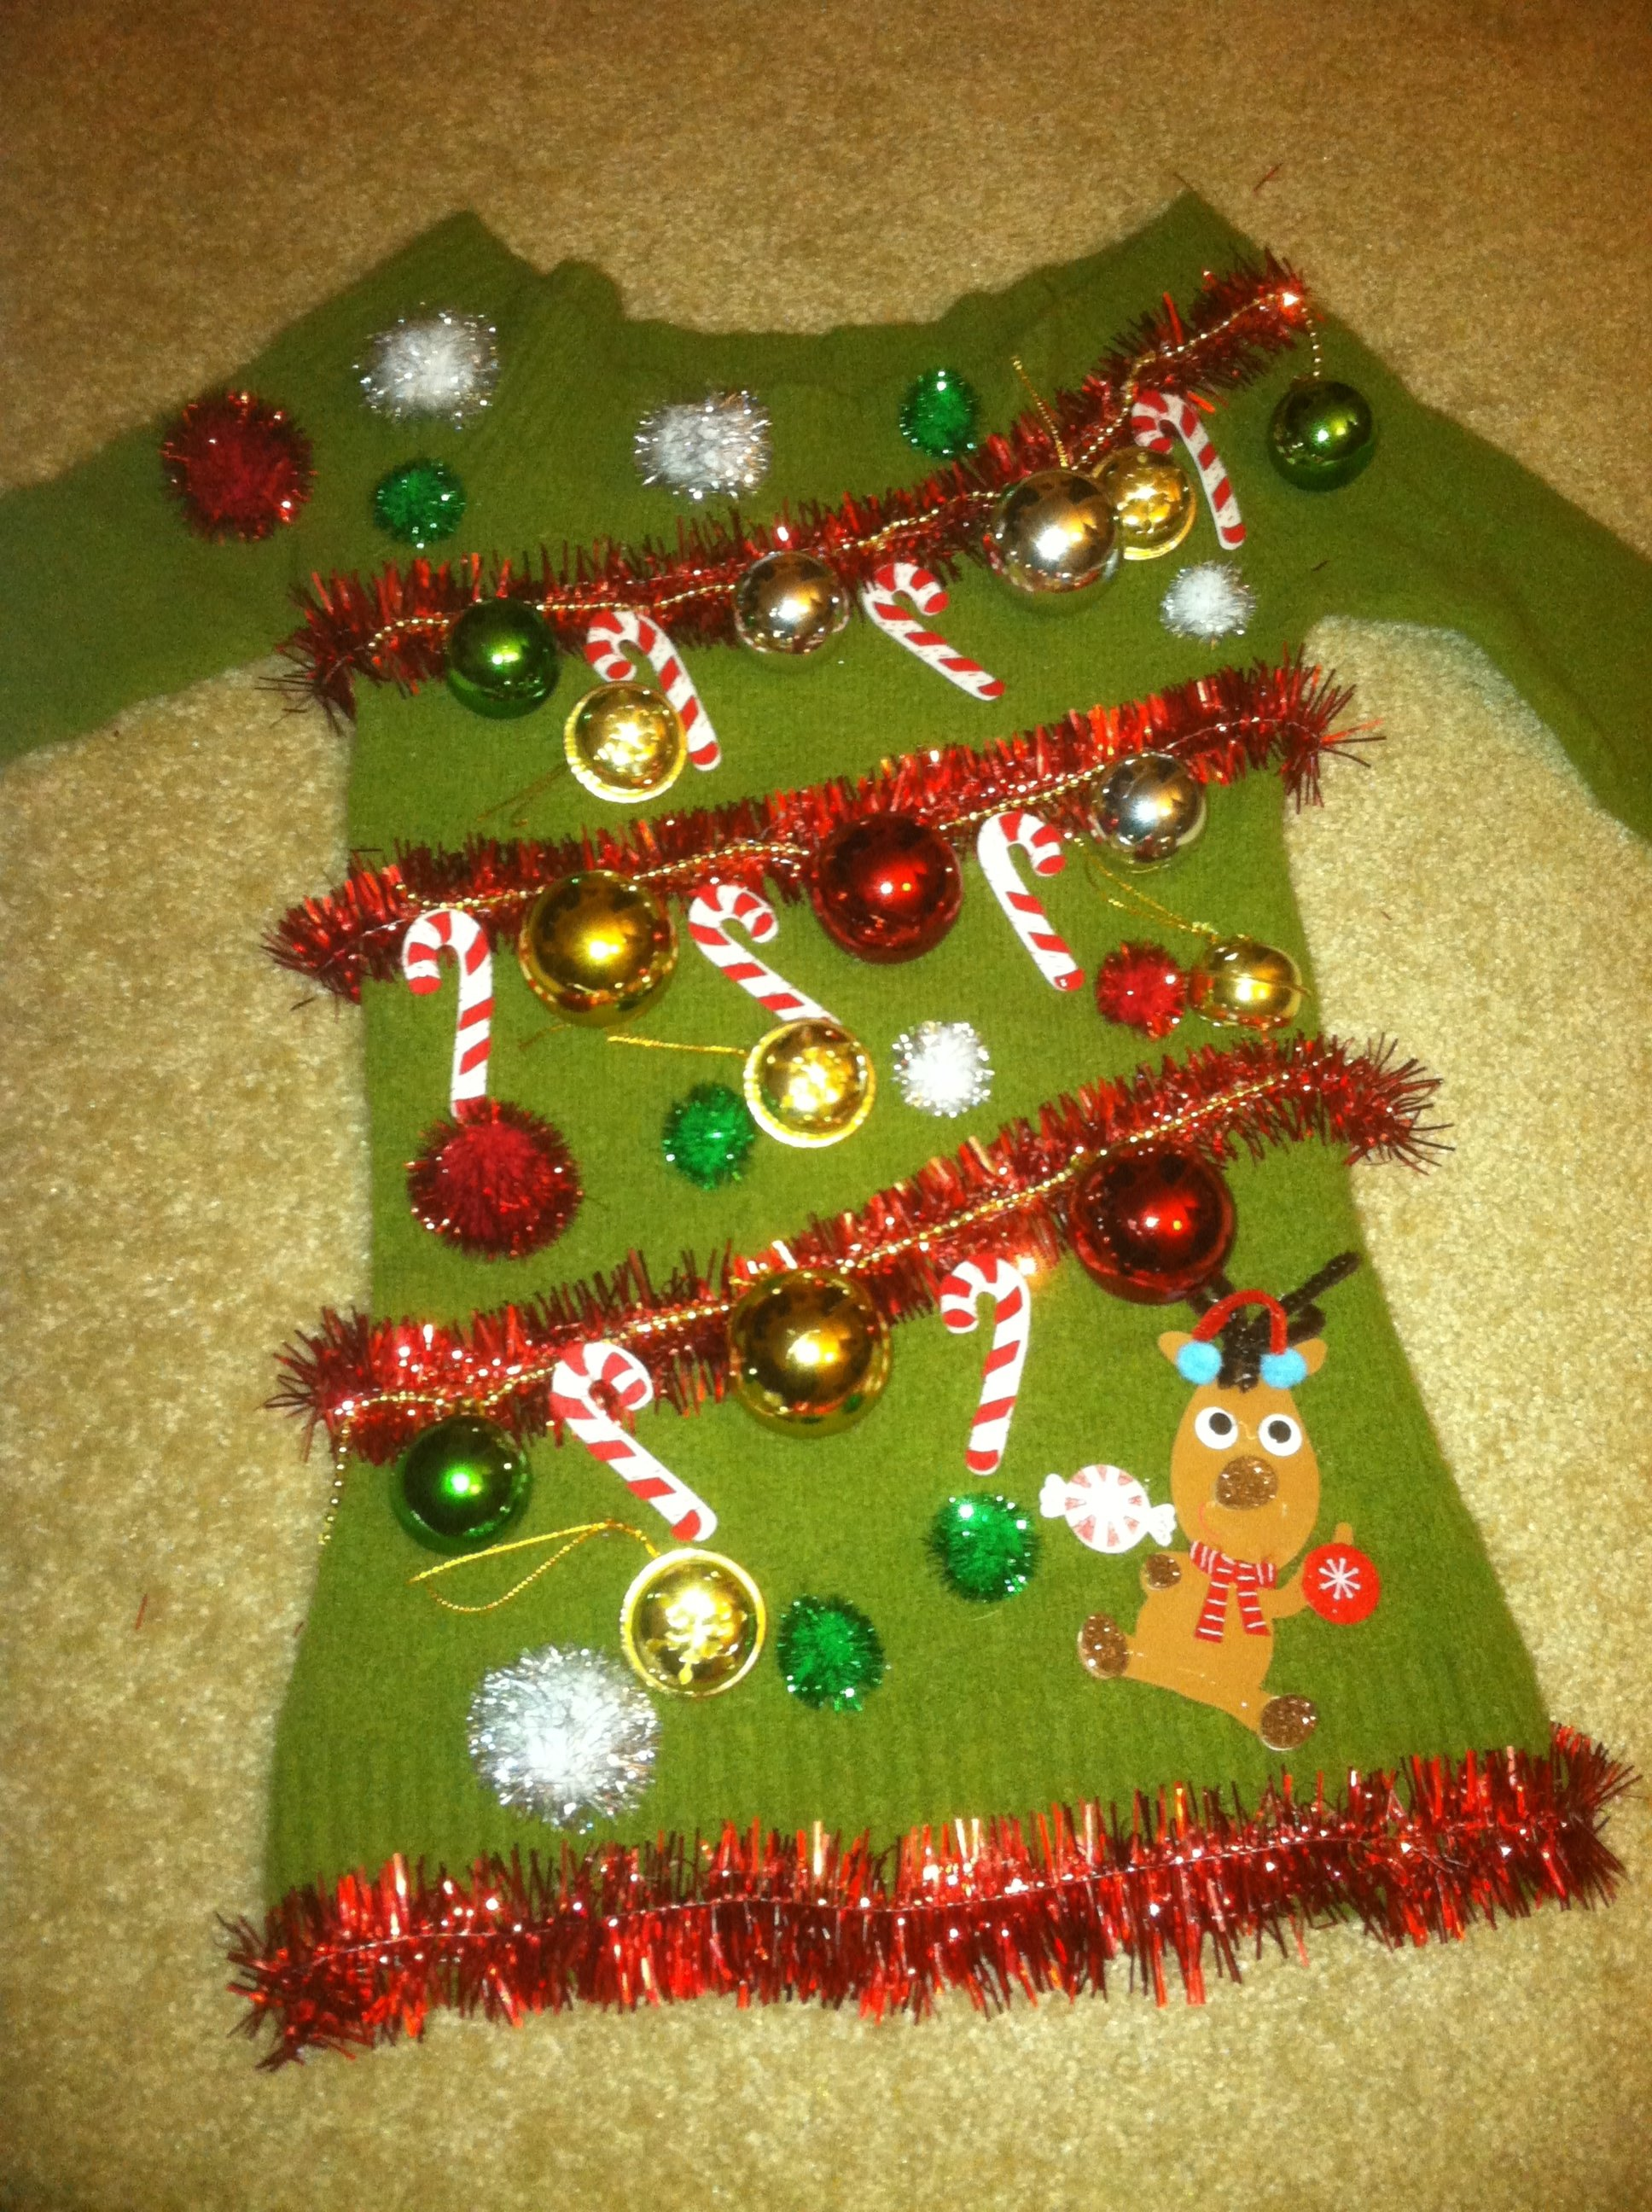 10 Wonderful How To Make An Ugly Christmas Sweater Ideas diy ugly christmas sweaters that prove youre awesome sweater ideas 2